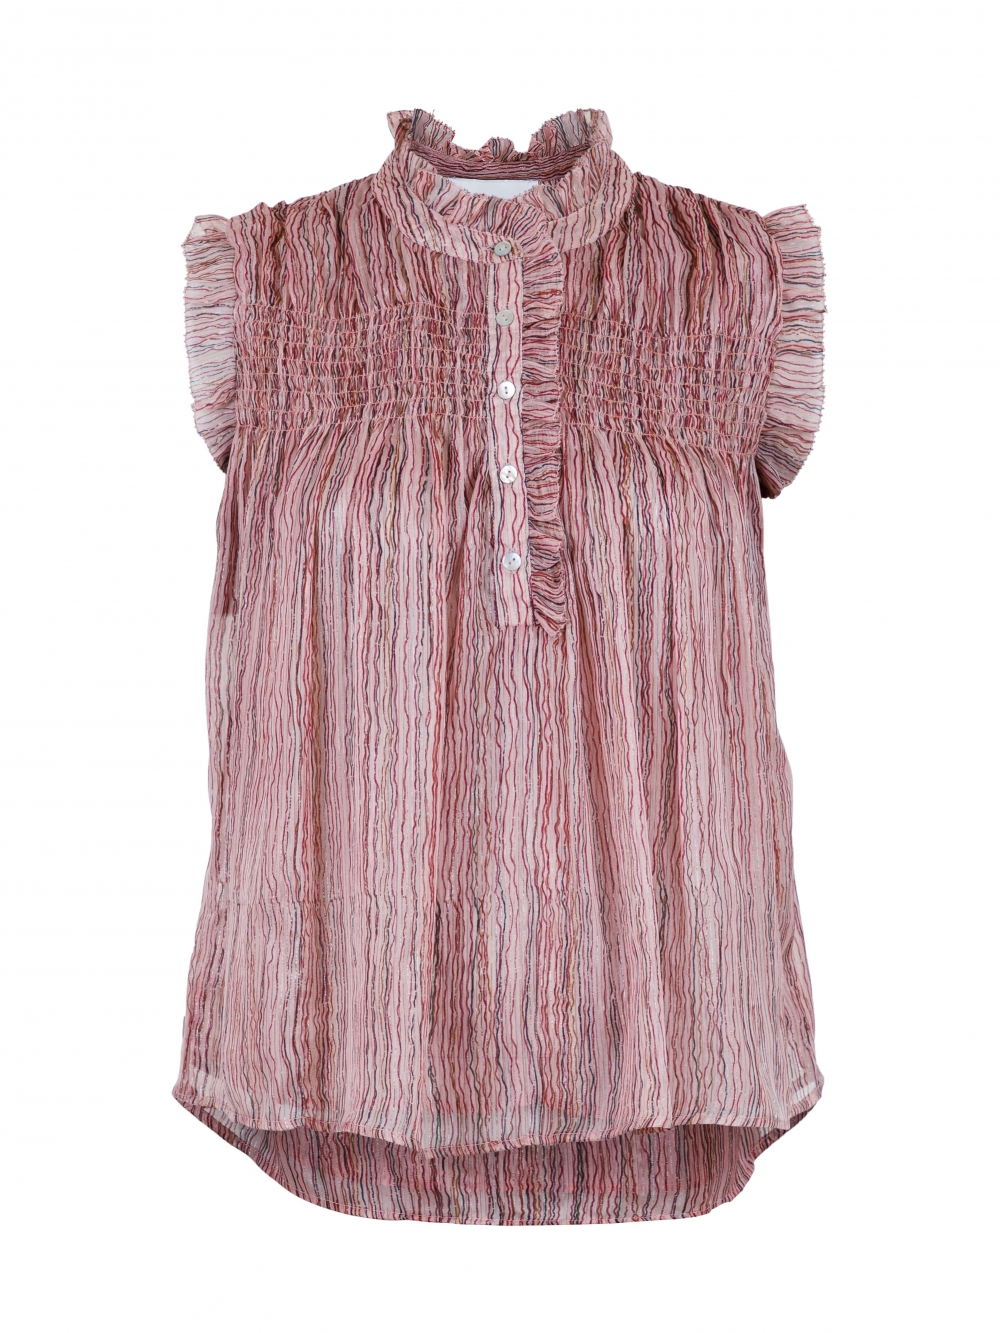 Neo Noir Ylva Mini Stripe Top - Dusty Rose